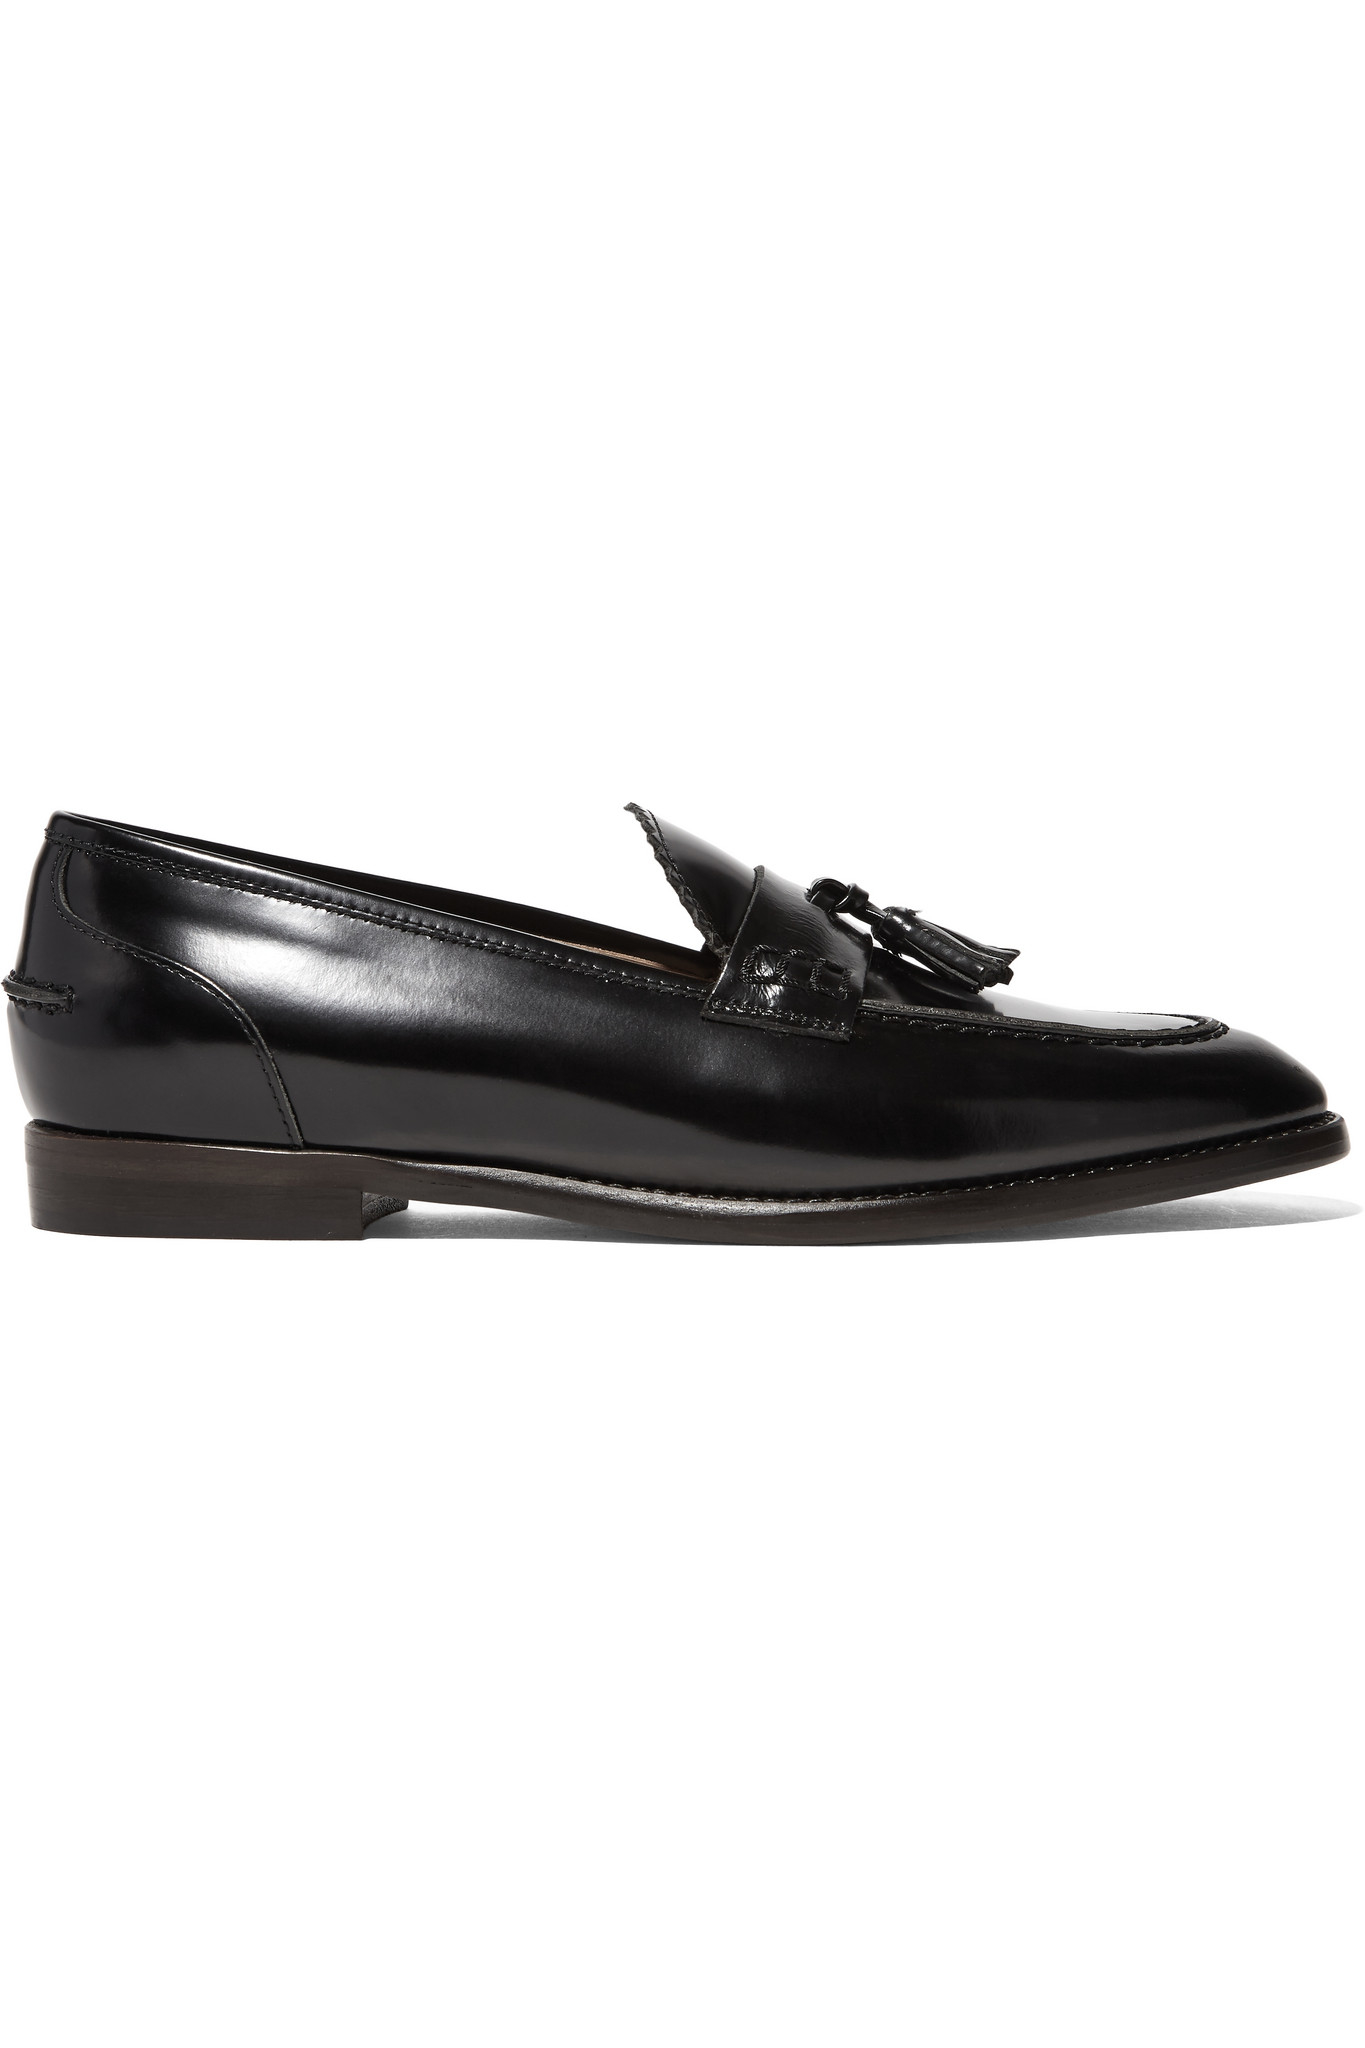 42648c633d7 J.Crew Tassel-embellished Glossed-leather Loafers in Black - Lyst